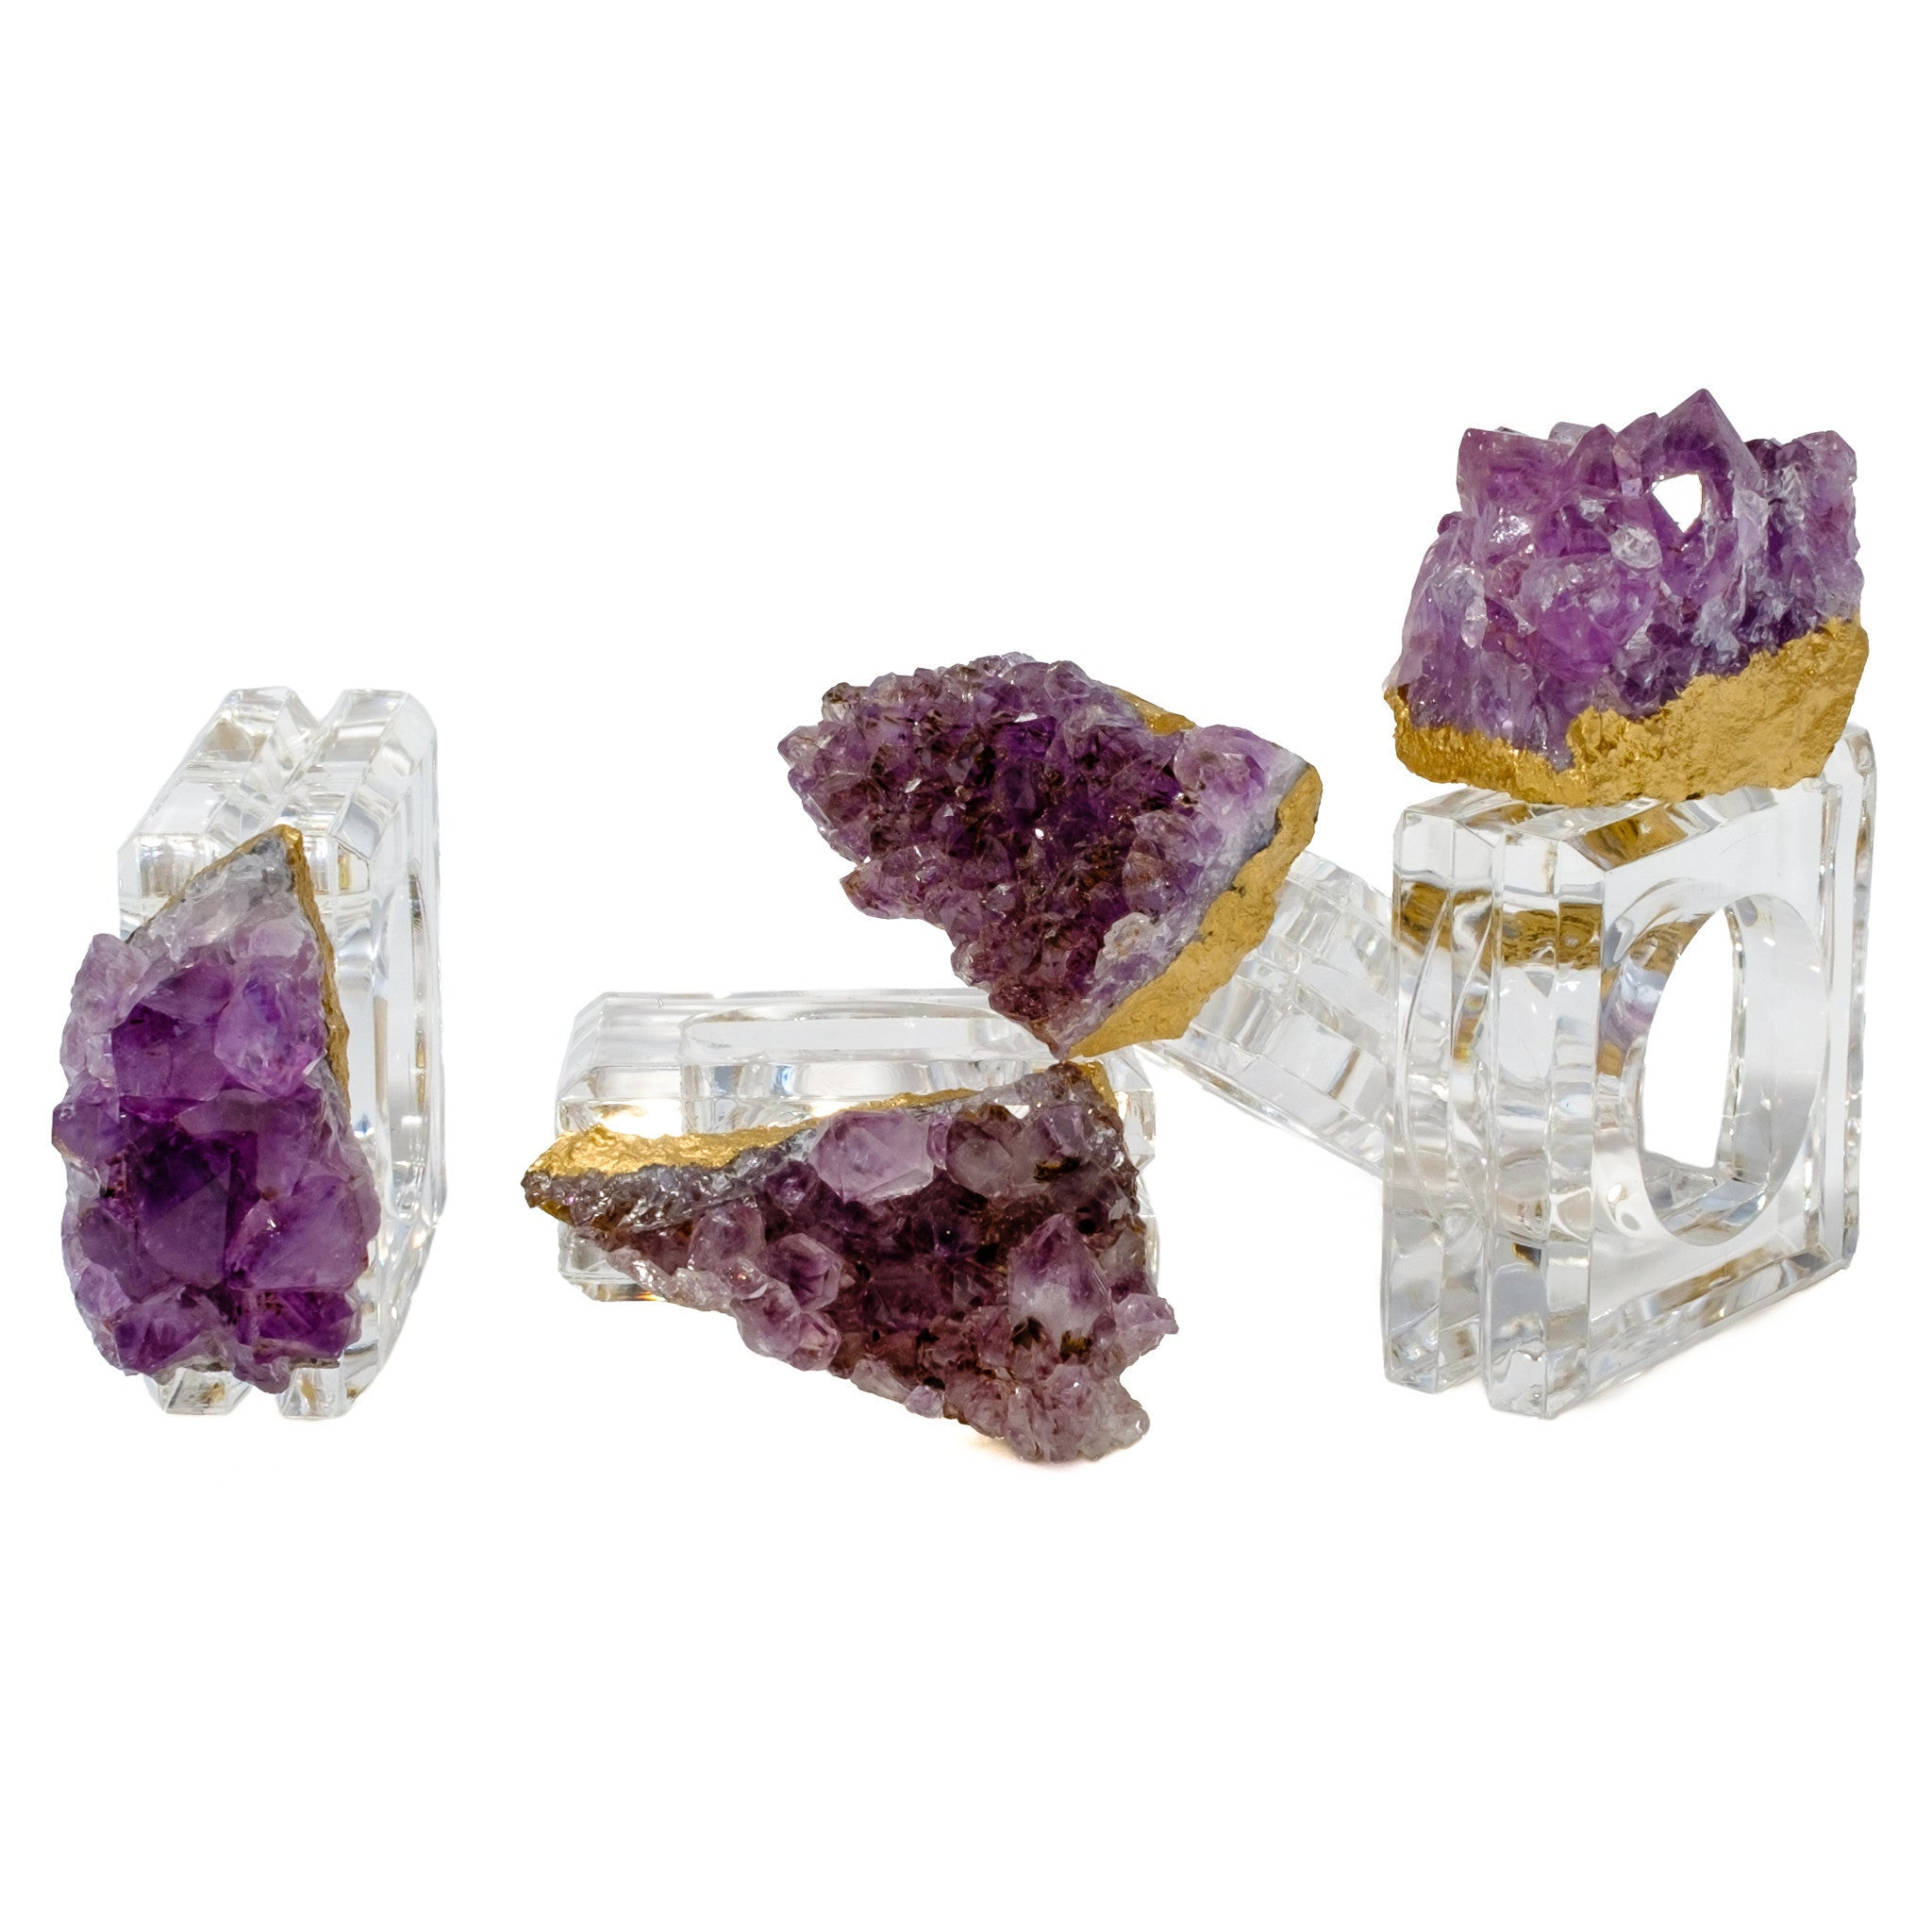 Amethyst Napkin Rings (set of 4) by Mapleton Drive